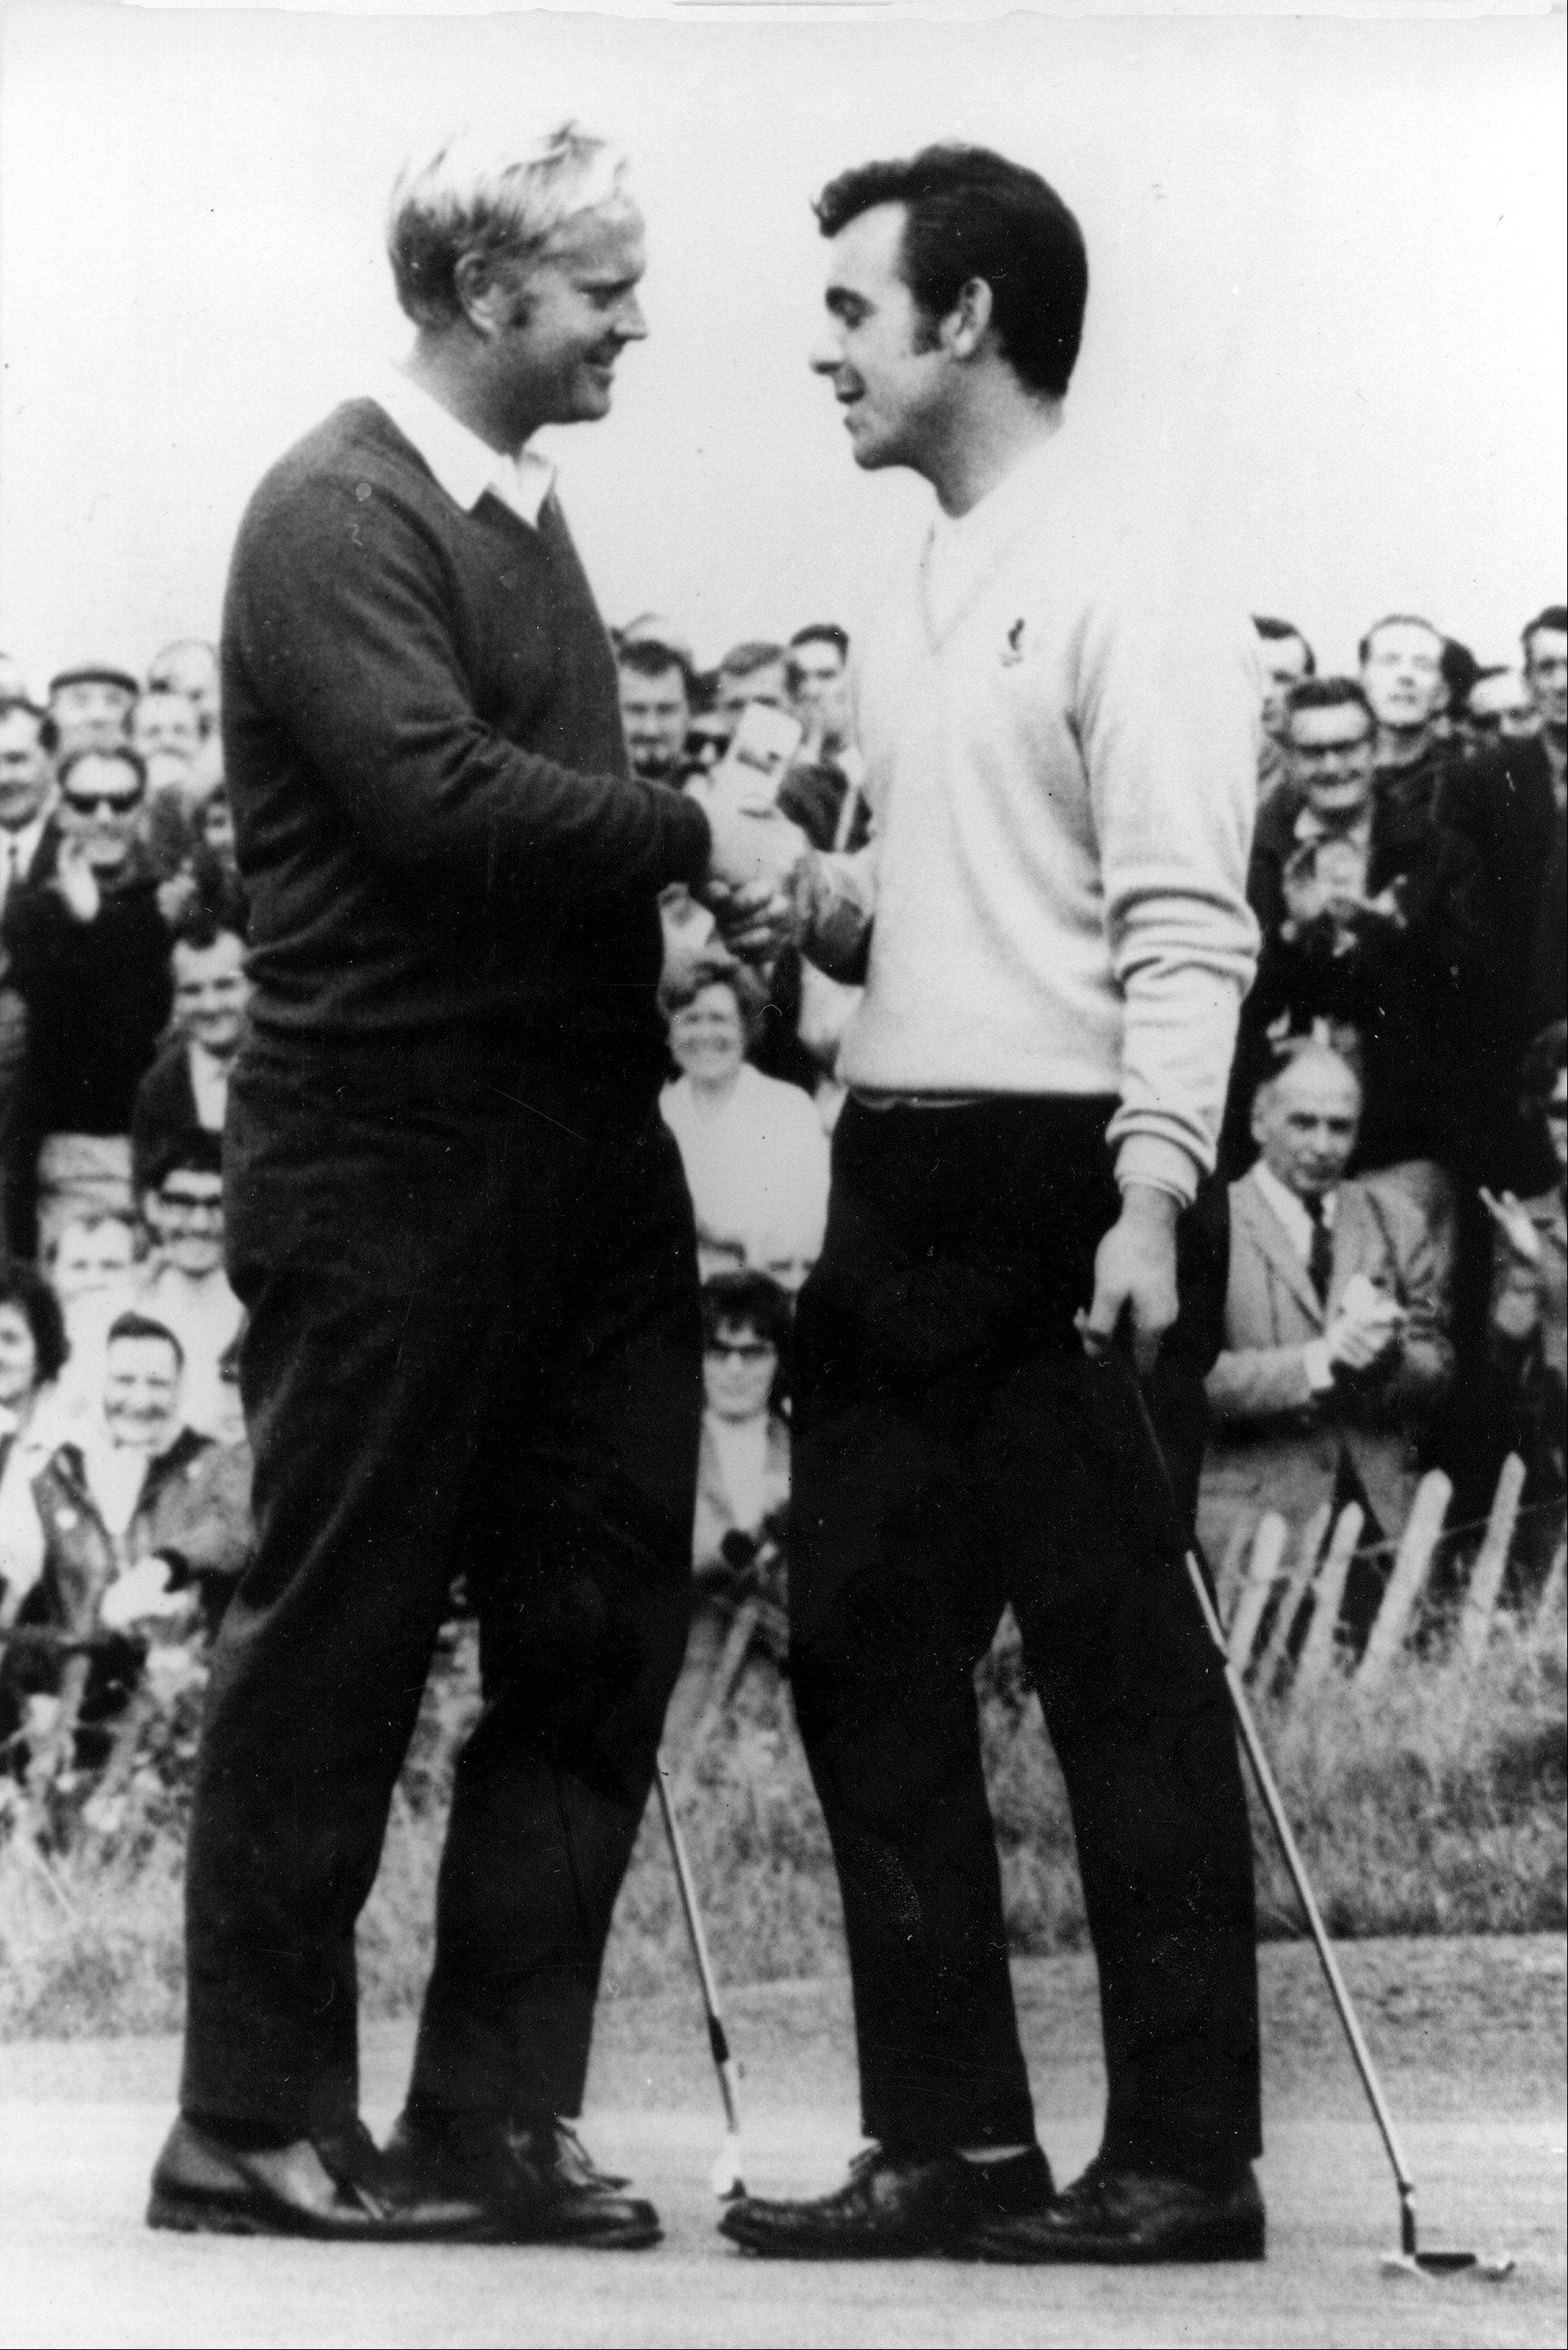 Jack Nicklaus, left, U.S.A., congratulates Tony Jacklin, Great Britain, after the British player beat him 4 and 3 in the Ryder Cup golf match at Royal Birkdale Golf Course, Lancashire, England, Saturday, Sept. 20, 1969. Nicklaus conceded a putt to Jacklin to tie the contest for the first time ever.